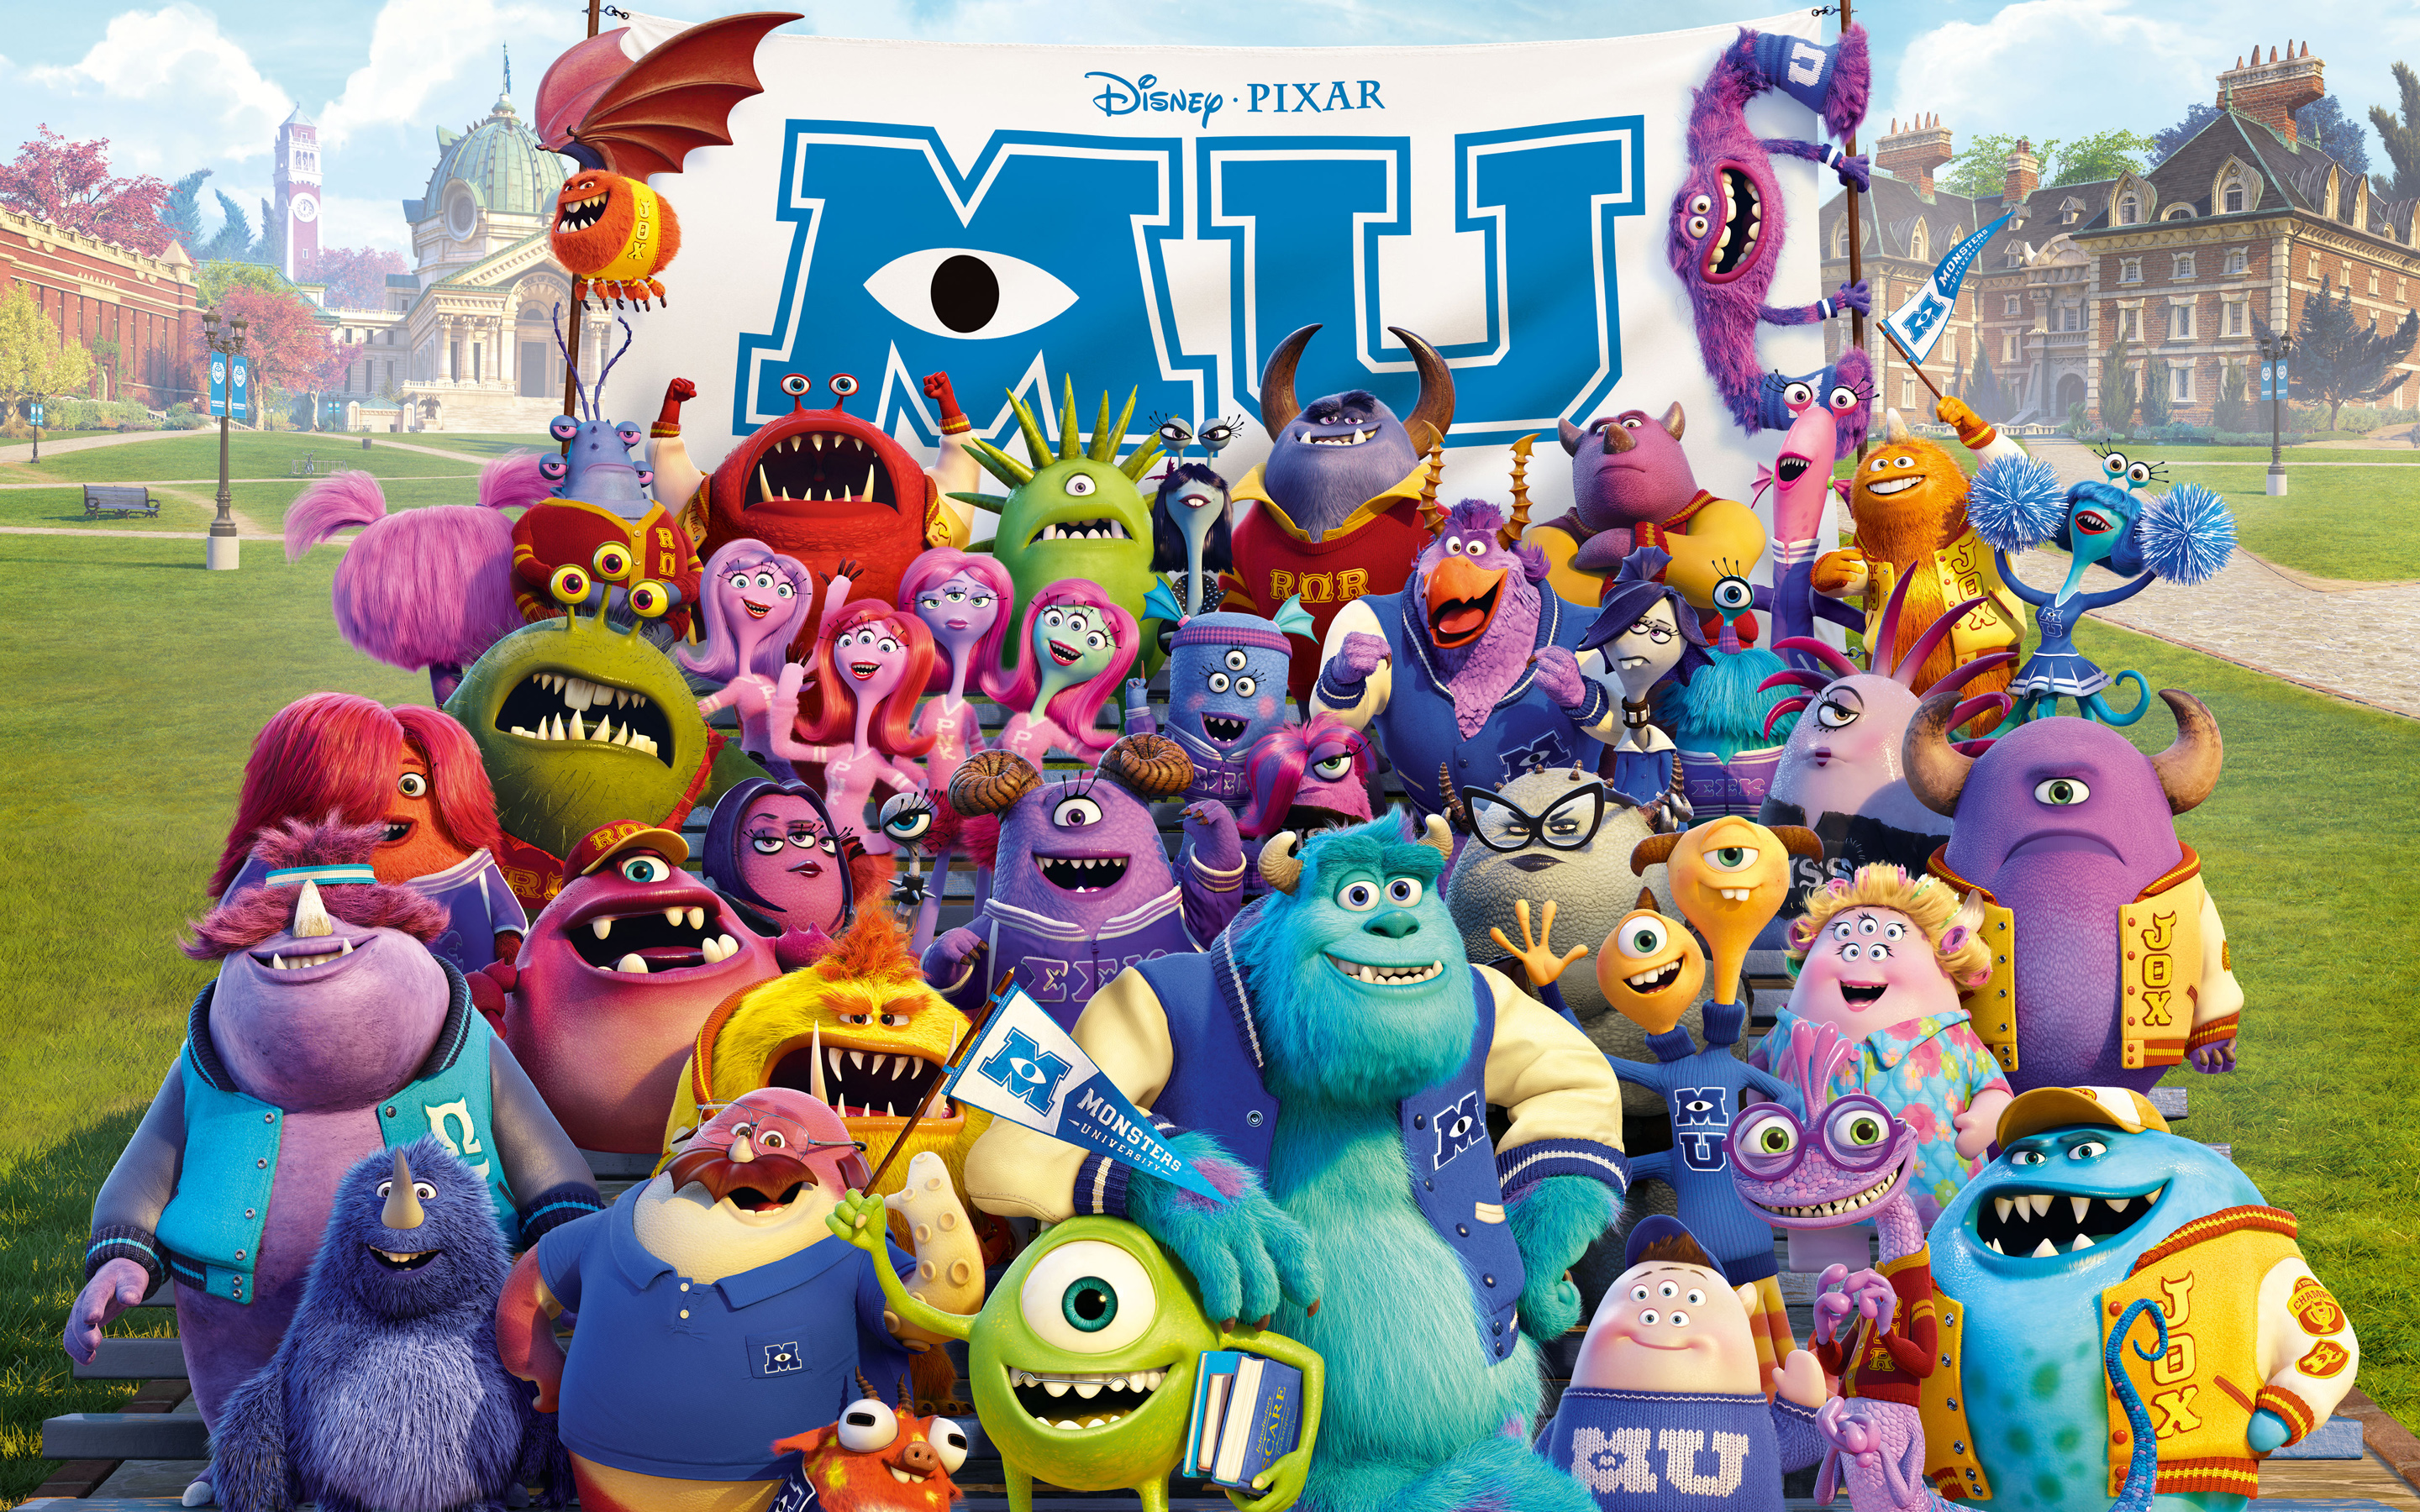 Monsters University 2013 Wallpaper - Monsters University 2013 Wallpaper